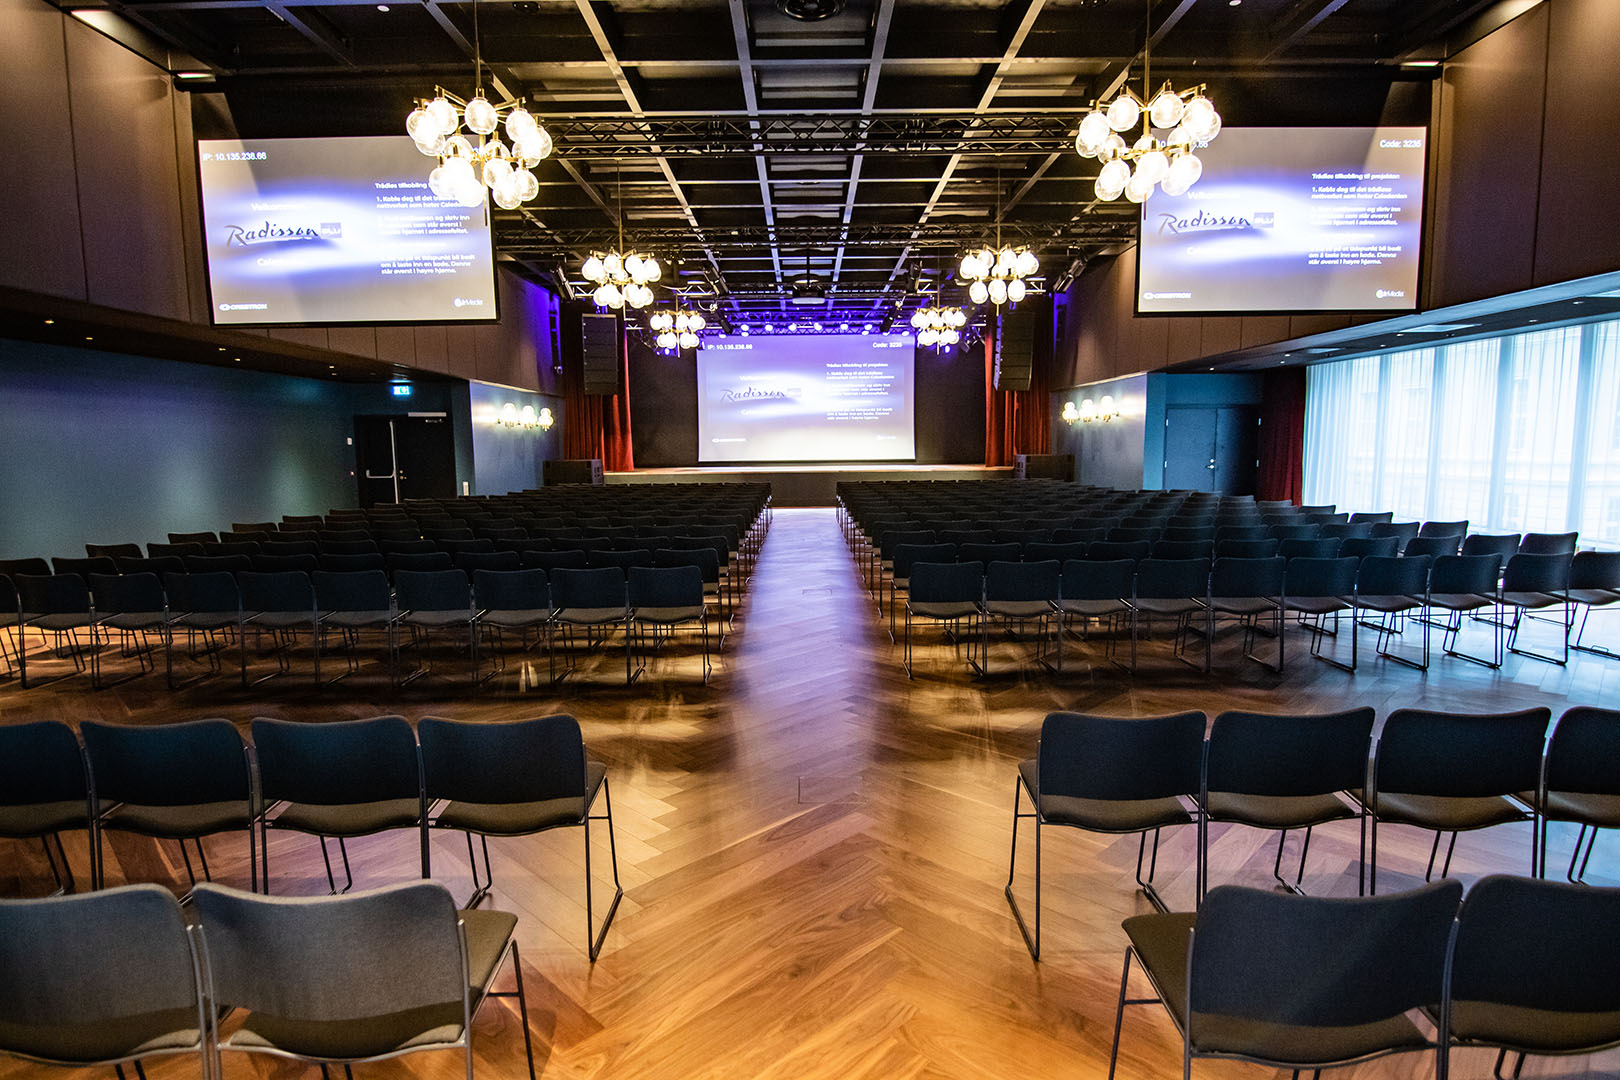 Radisson Blue Caledonien Hotel With 12 meeting rooms of different sizes, and with capacity for a total of 650 guests, events, seminars or meetings can be held at the Radisson Blu Caledonien Hotel in Kristiansand.